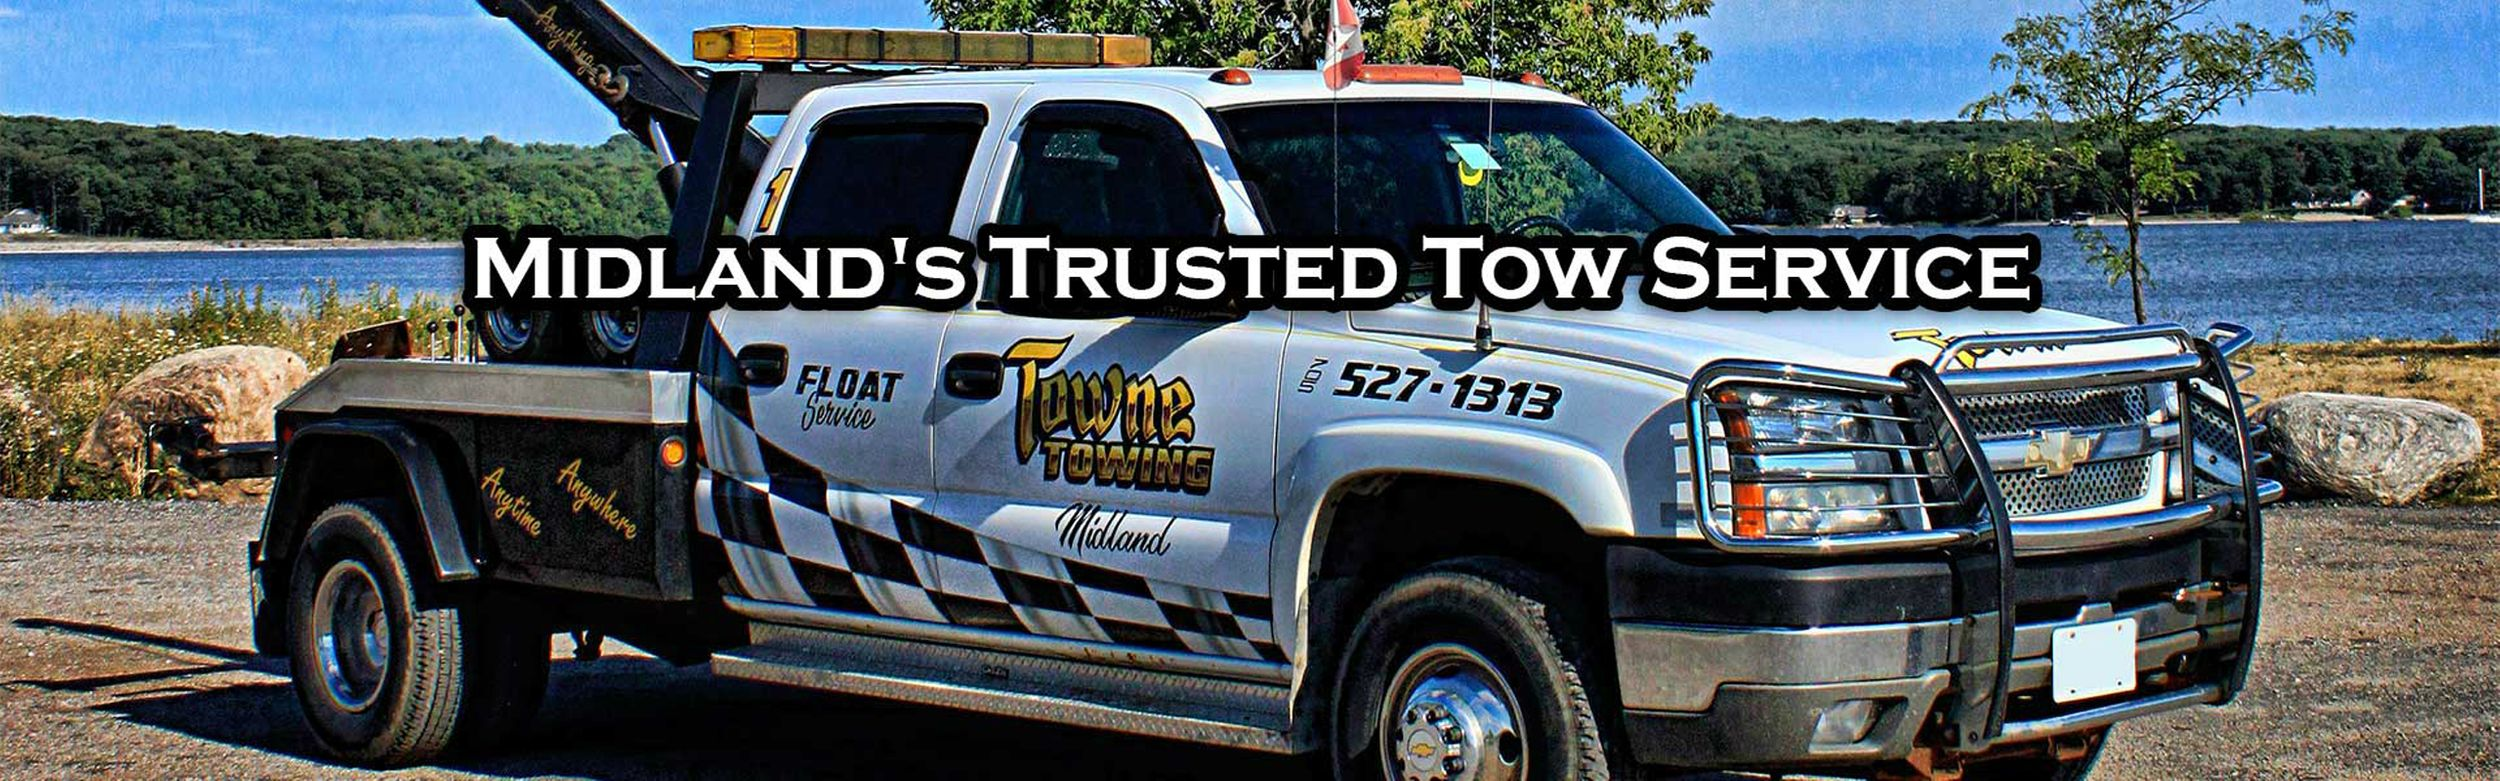 Midland's Trusted Tow Service